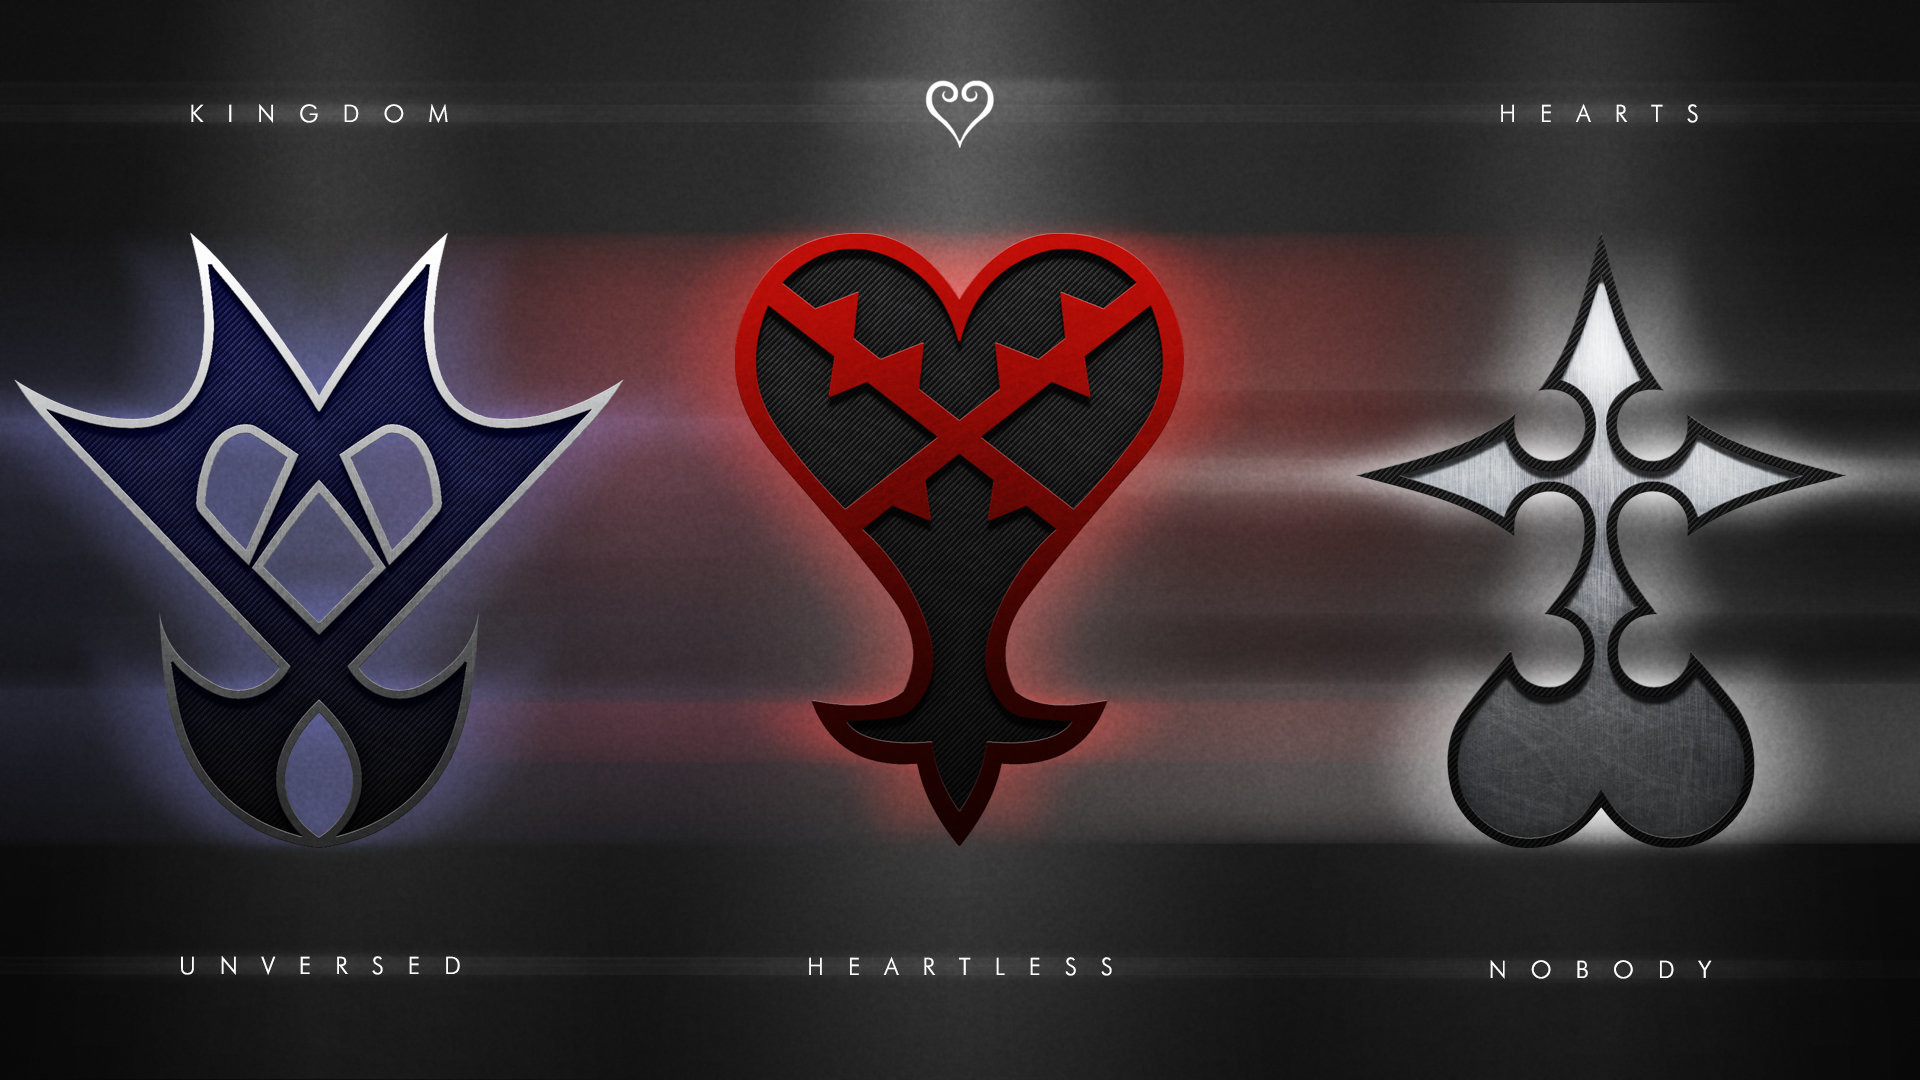 Res: 1920x1080, Kingdom Hearts Emblems Wallpaper by Pencil X Paper